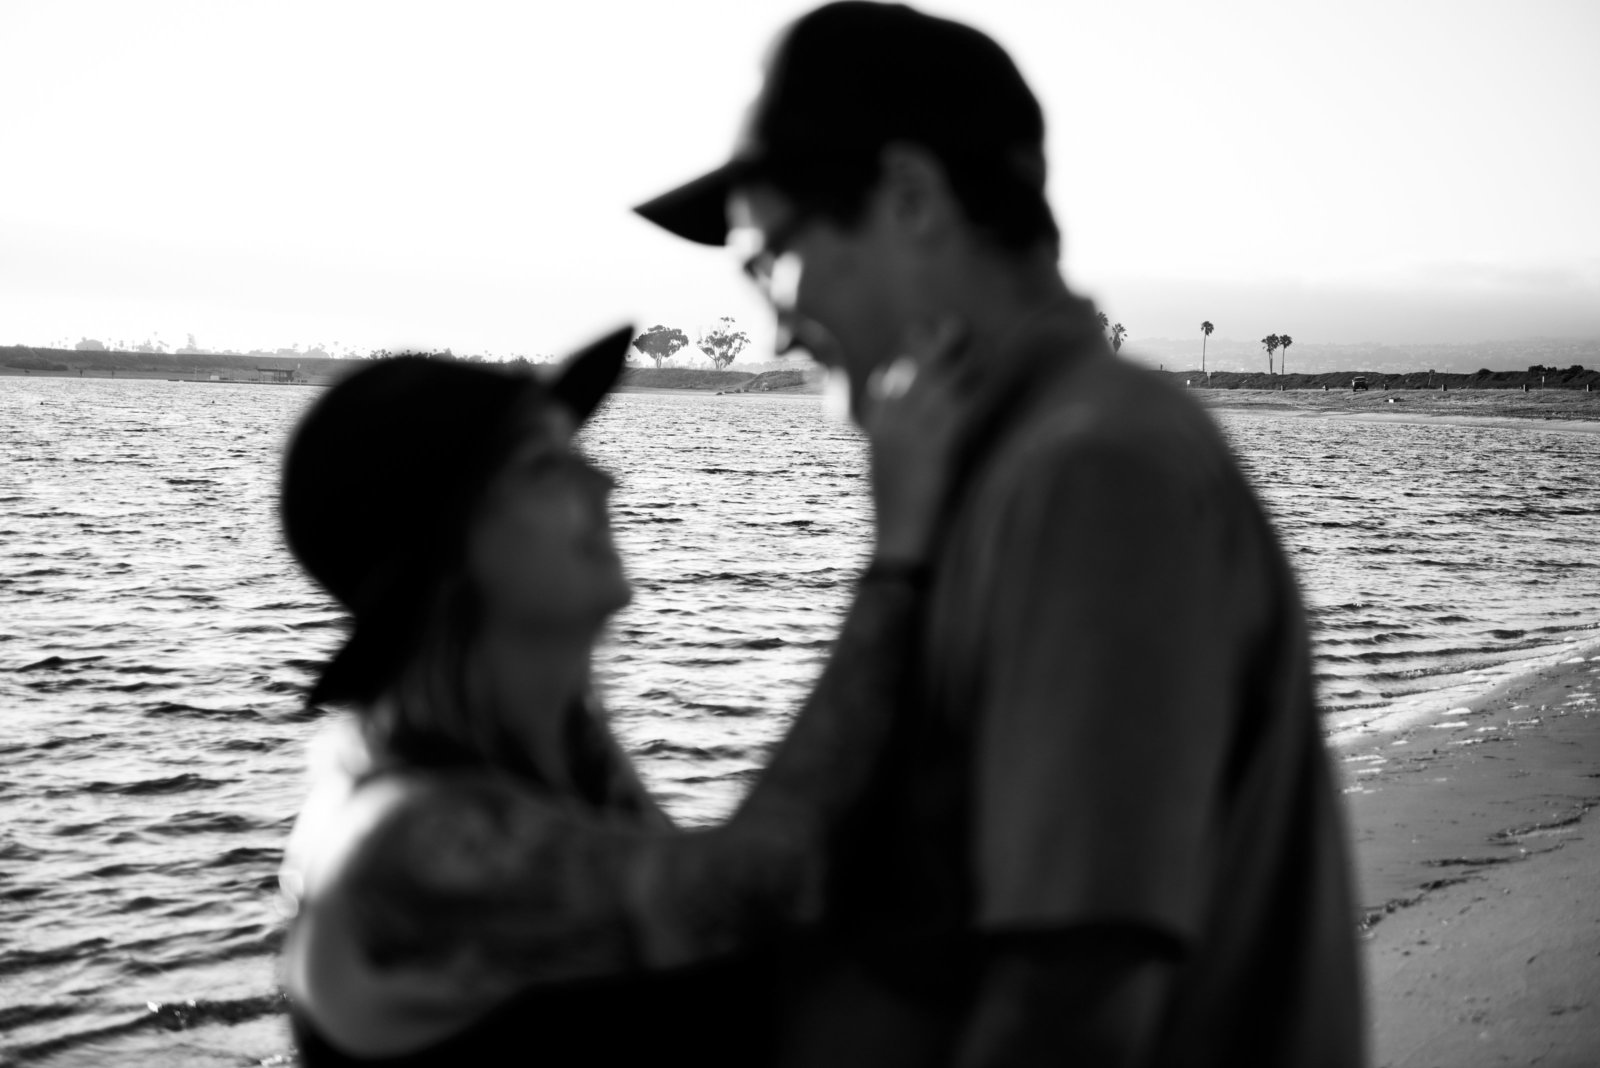 sandiego-wedding-engagement-photographer-photography-family-lifestyle-portrait-27